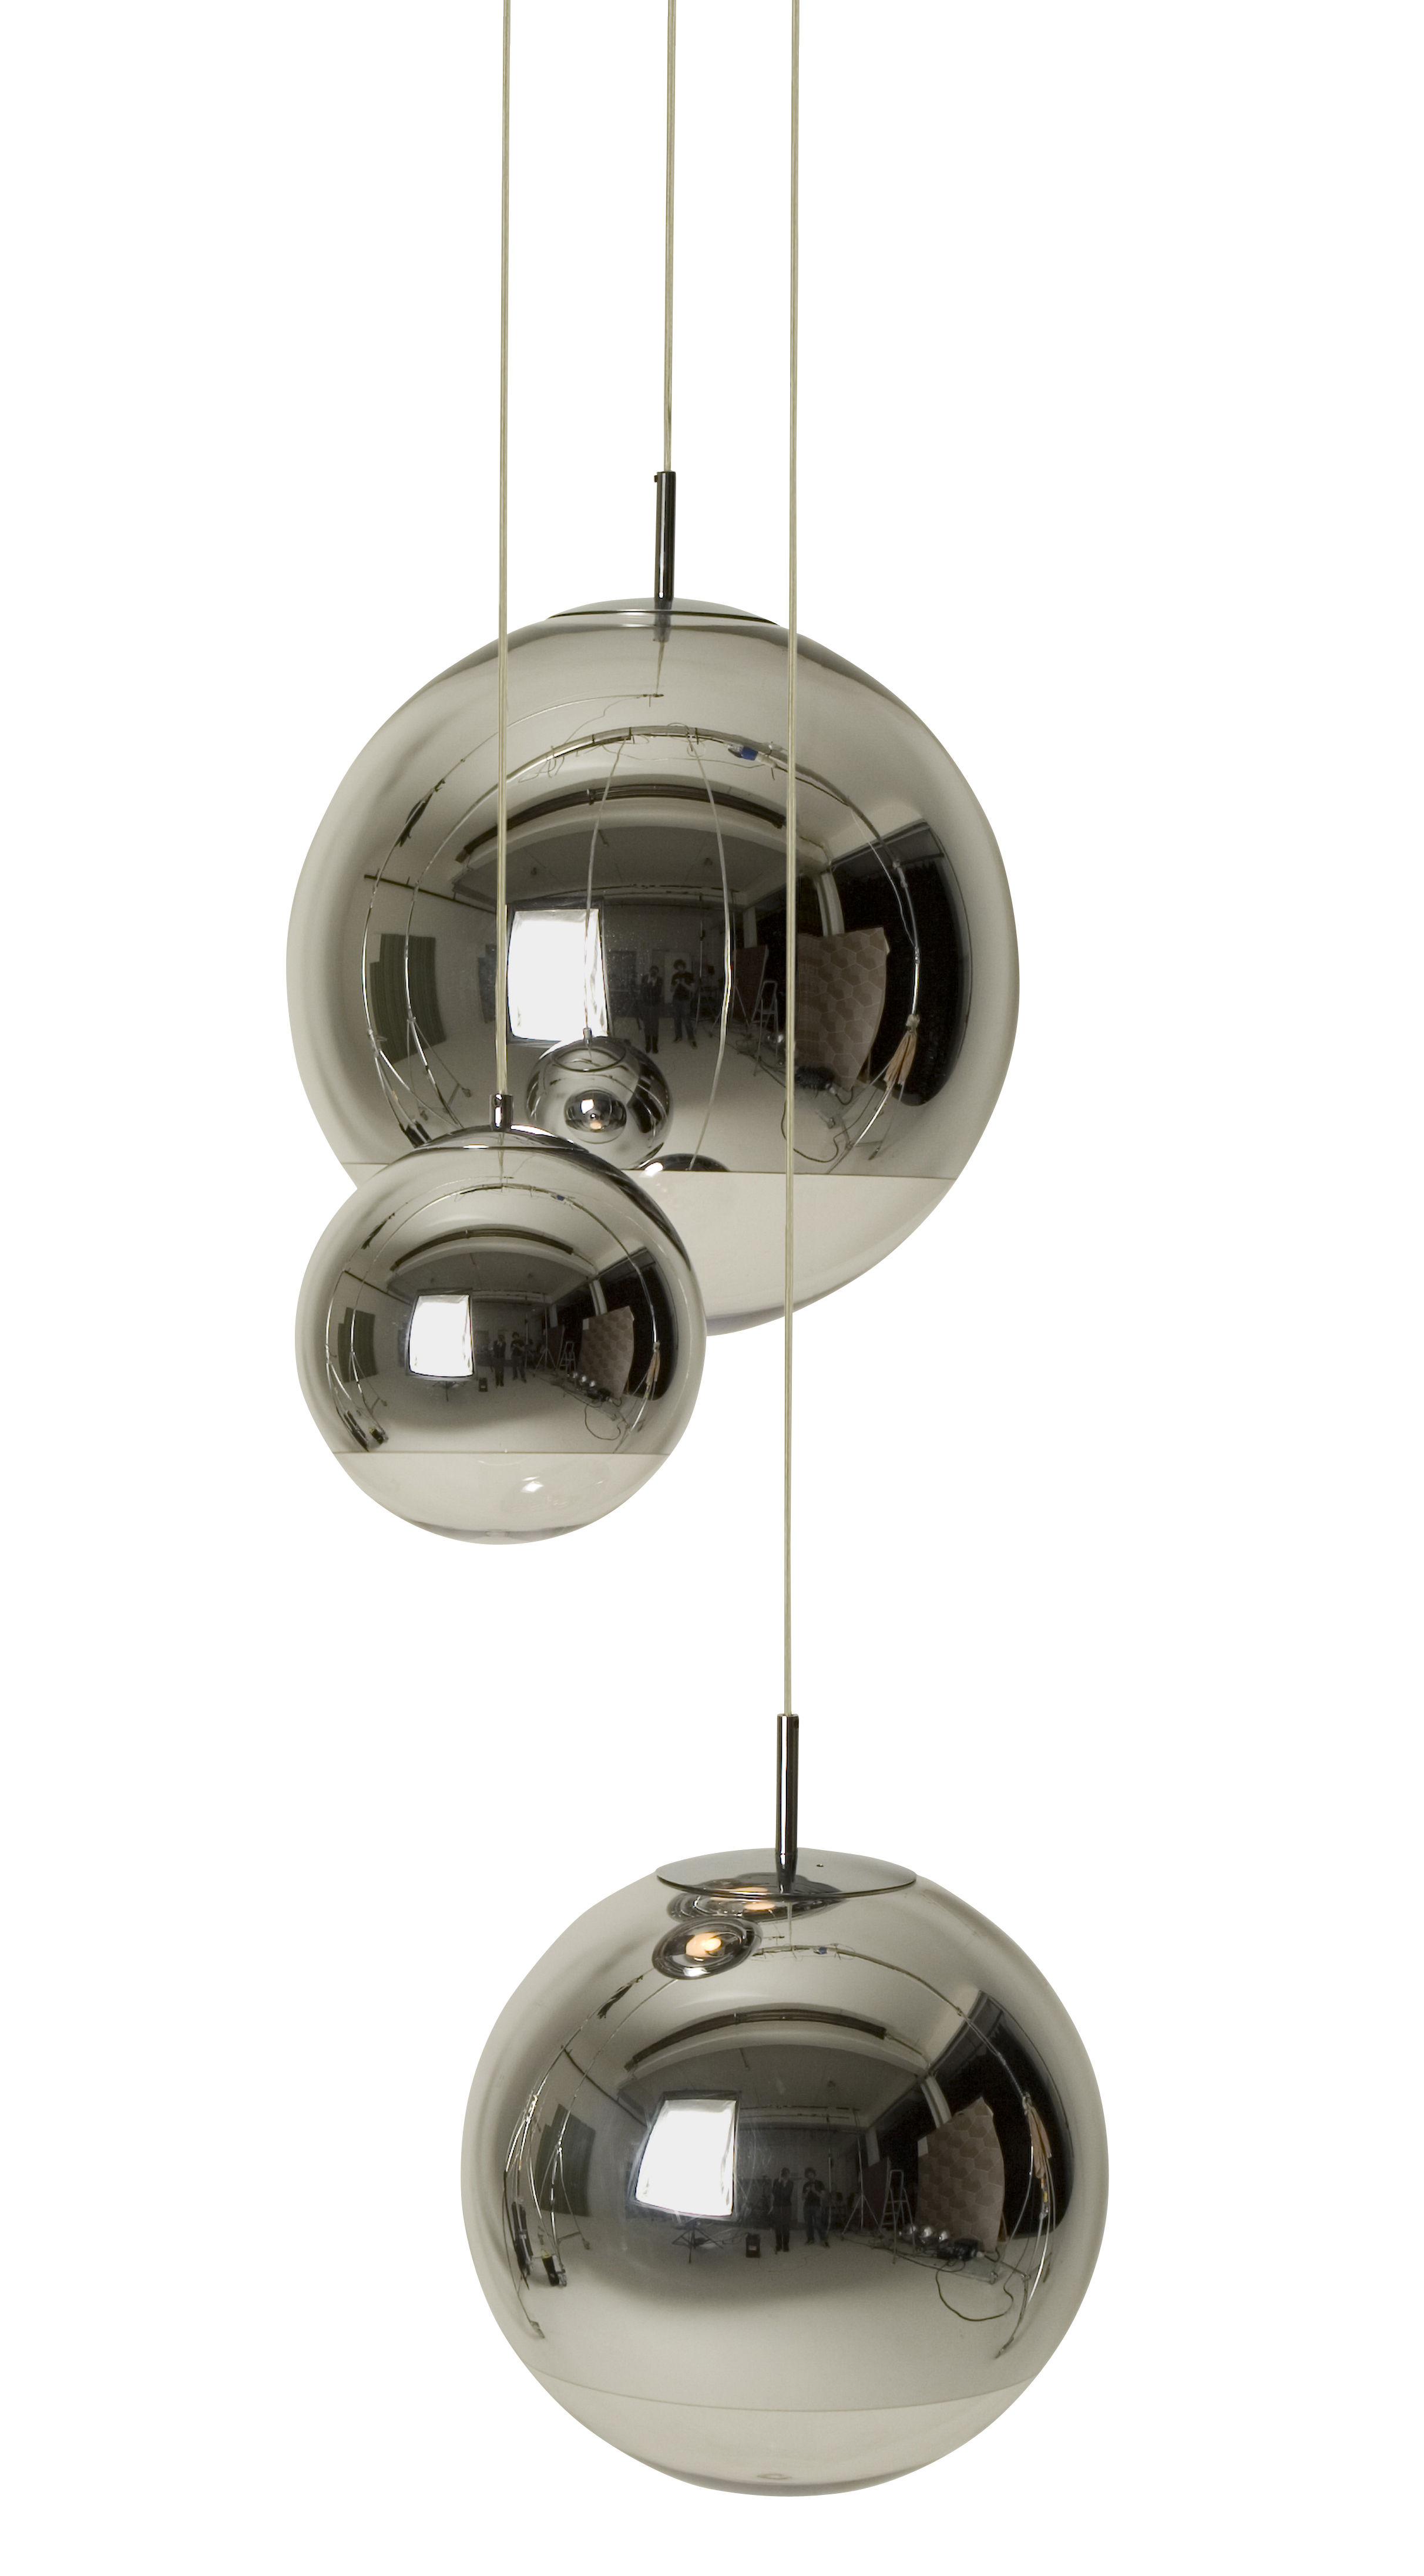 mirror ball large pendant pendant light 50 cm by tom dixon. Black Bedroom Furniture Sets. Home Design Ideas